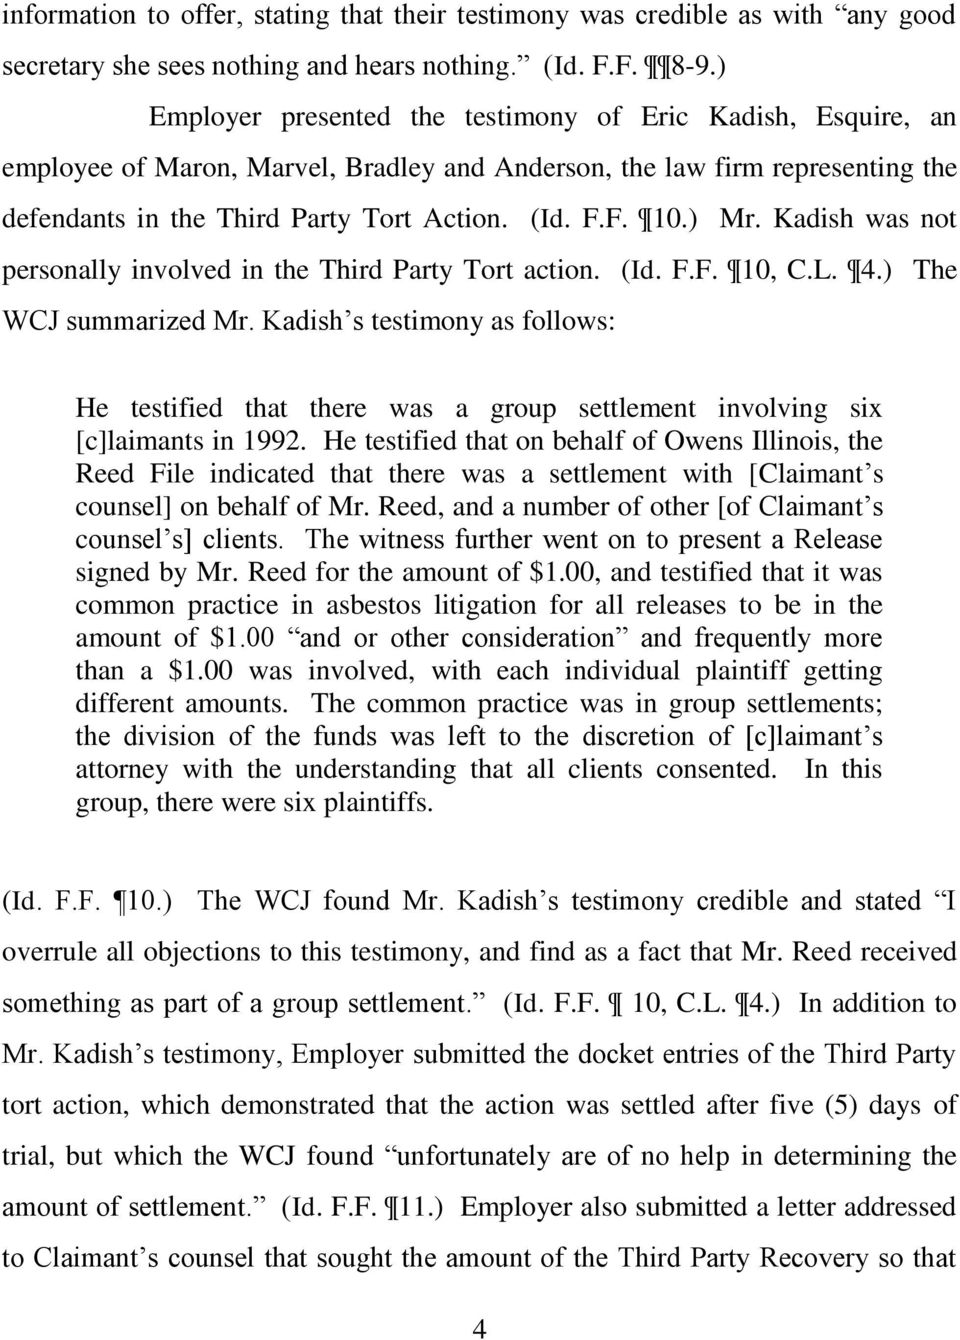 ) Mr. Kadish was not personally involved in the Third Party Tort action. (Id. F.F. 10, C.L. 4.) The WCJ summarized Mr.